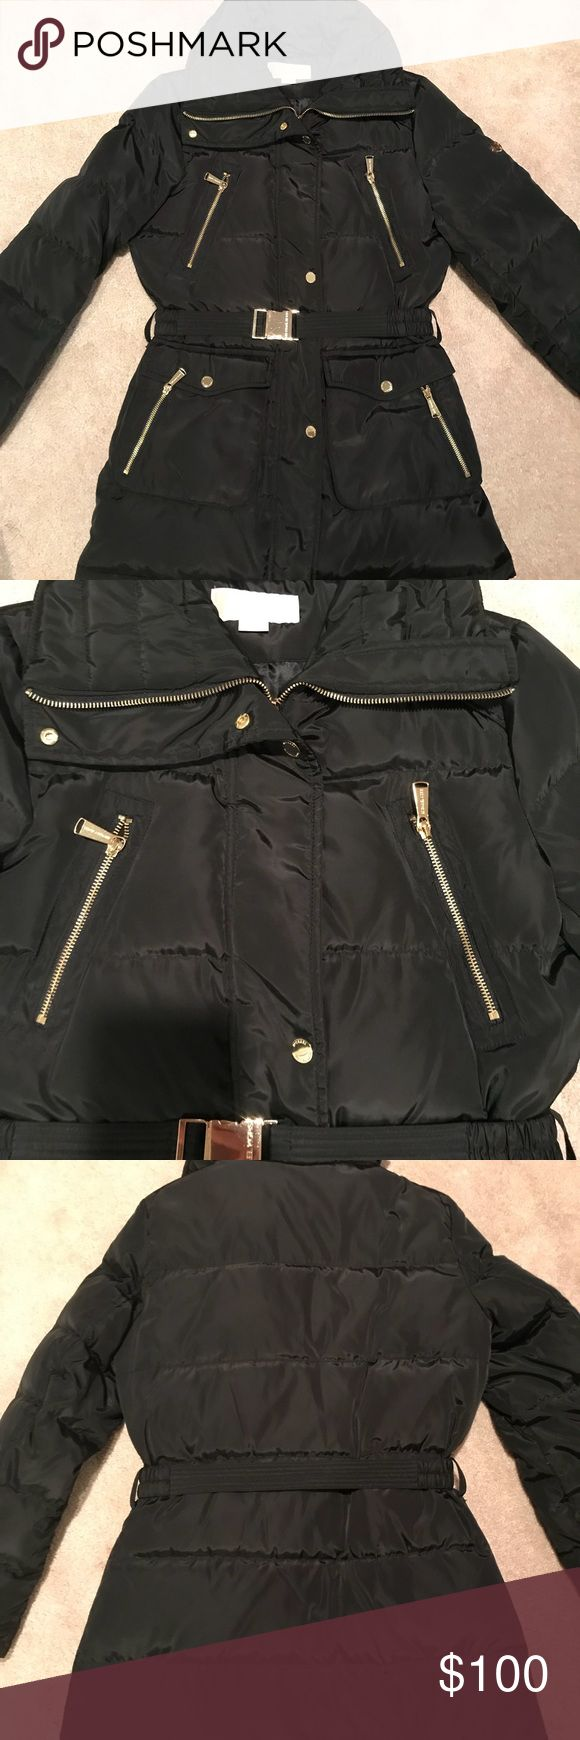 Michael Kors Puffer Coat Beautiful down filled winter coat in very good condition with pretty gold hardware. Comes with belt but no hood. Michael Kors Jackets & Coats Puffers